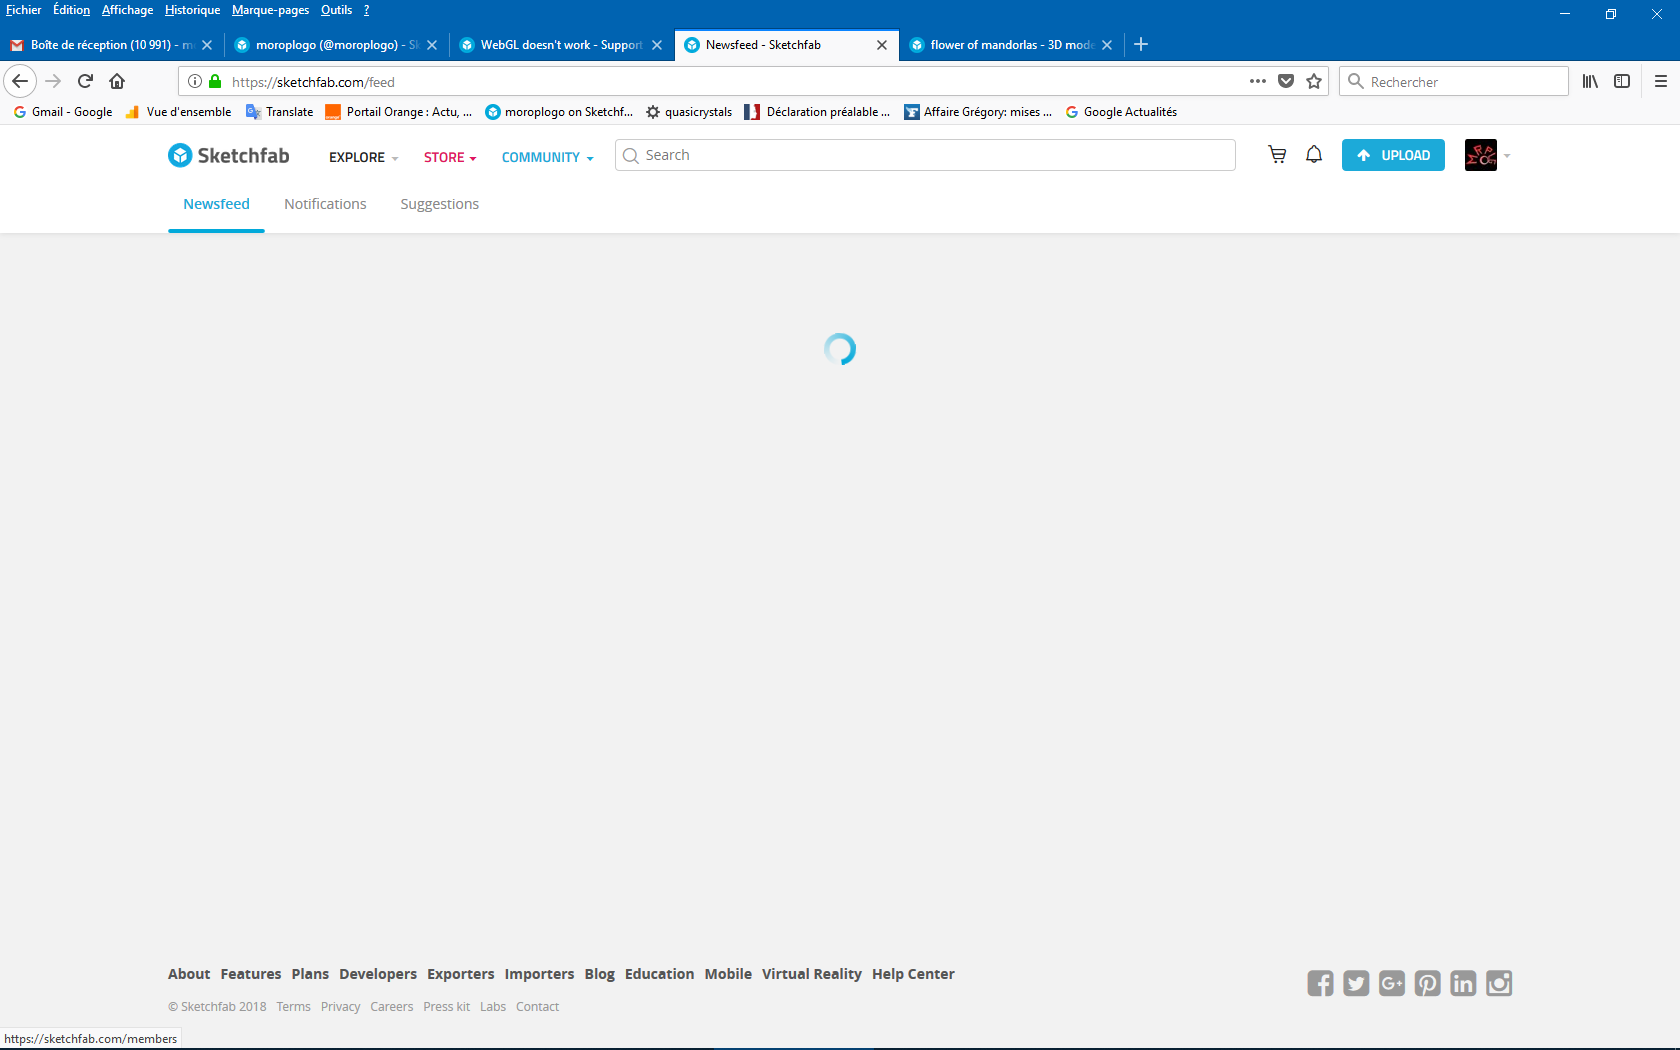 Getting blank pages in Firefox - Support - Sketchfab Forum